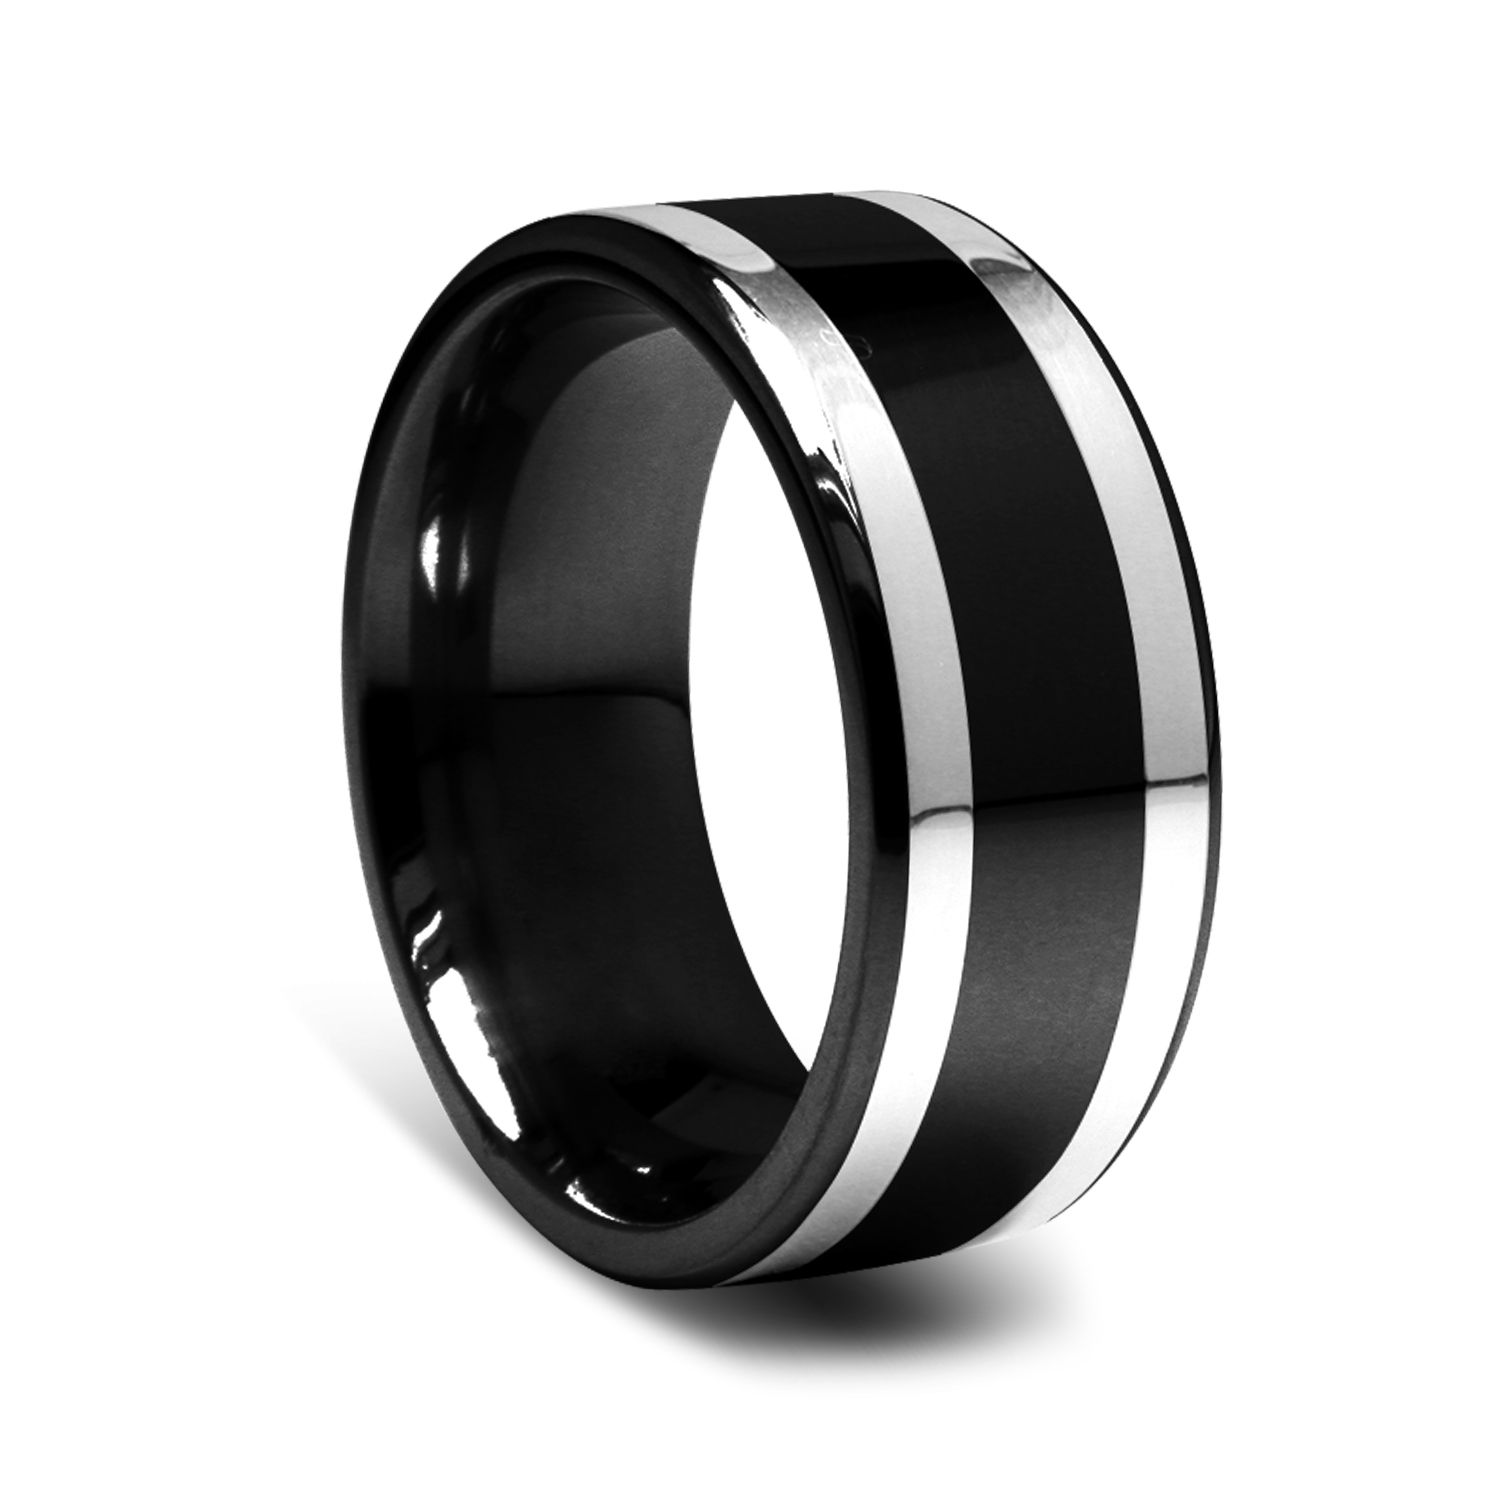 9mm black titanium mens ring with silver inlay a great With mens wedding rings black and silver